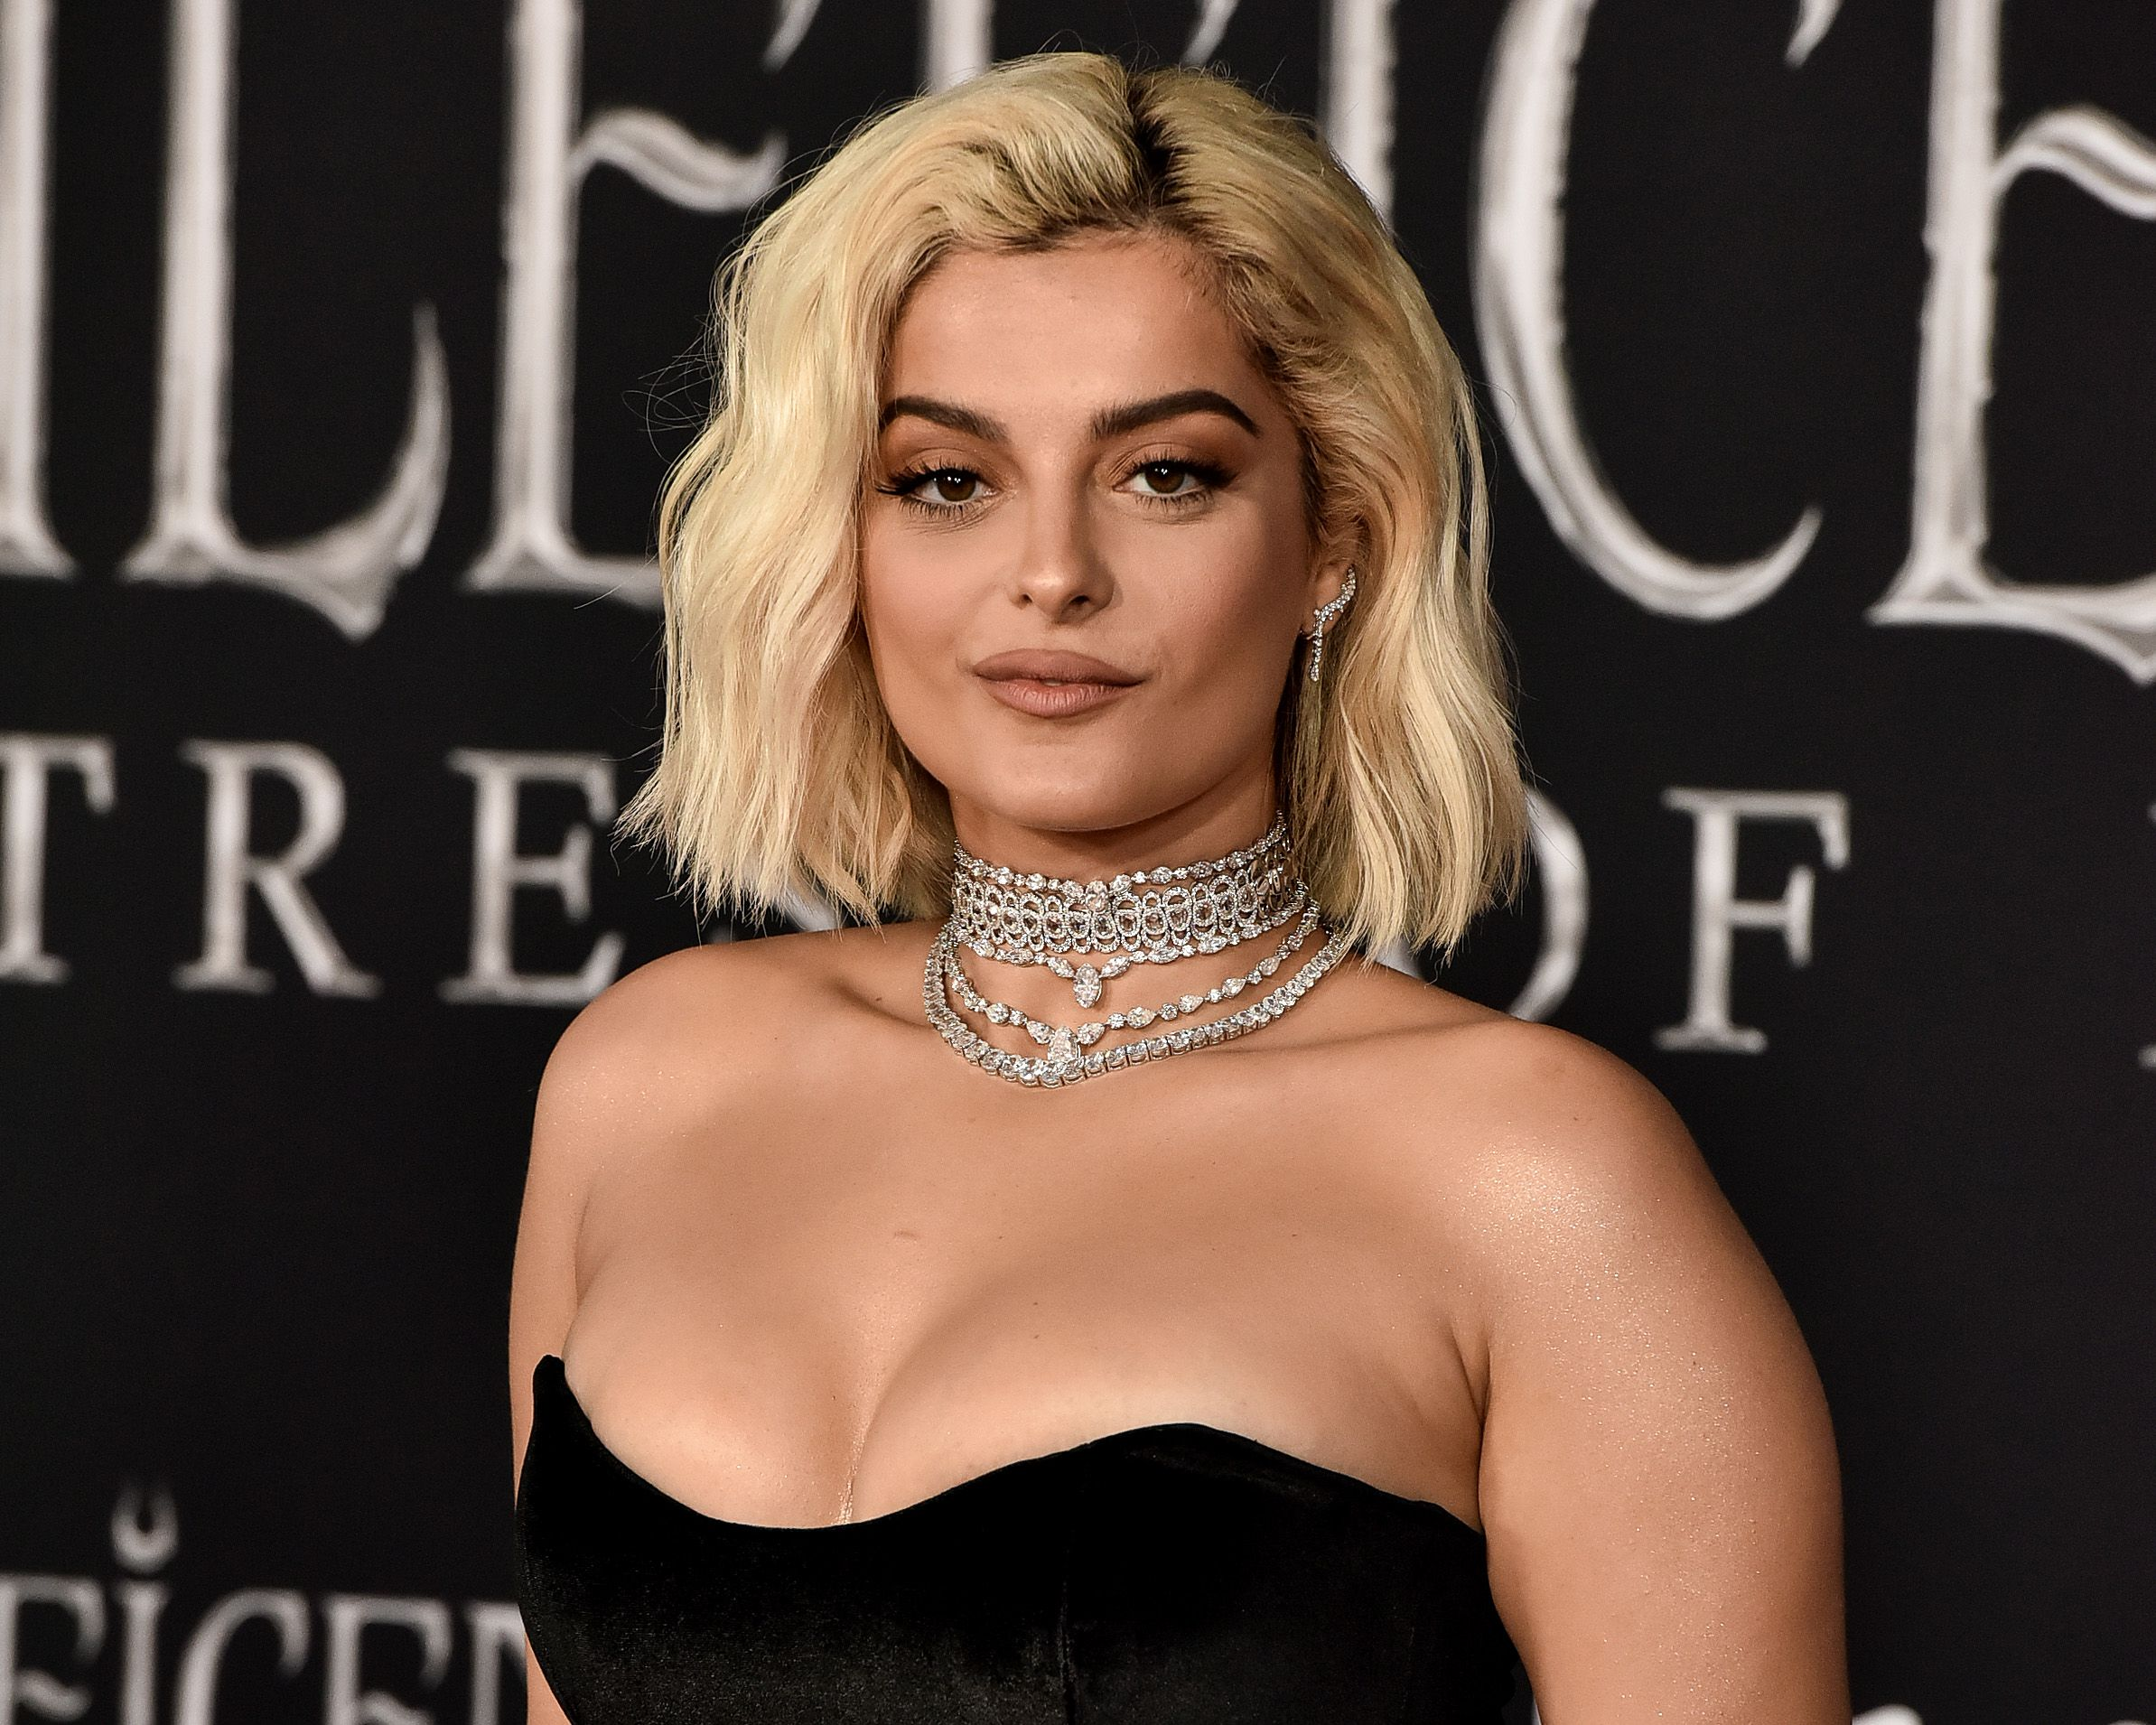 Eccezionale Bebe Rexha Has Advice For Instagram Troll Who Told Her To Lose HM17